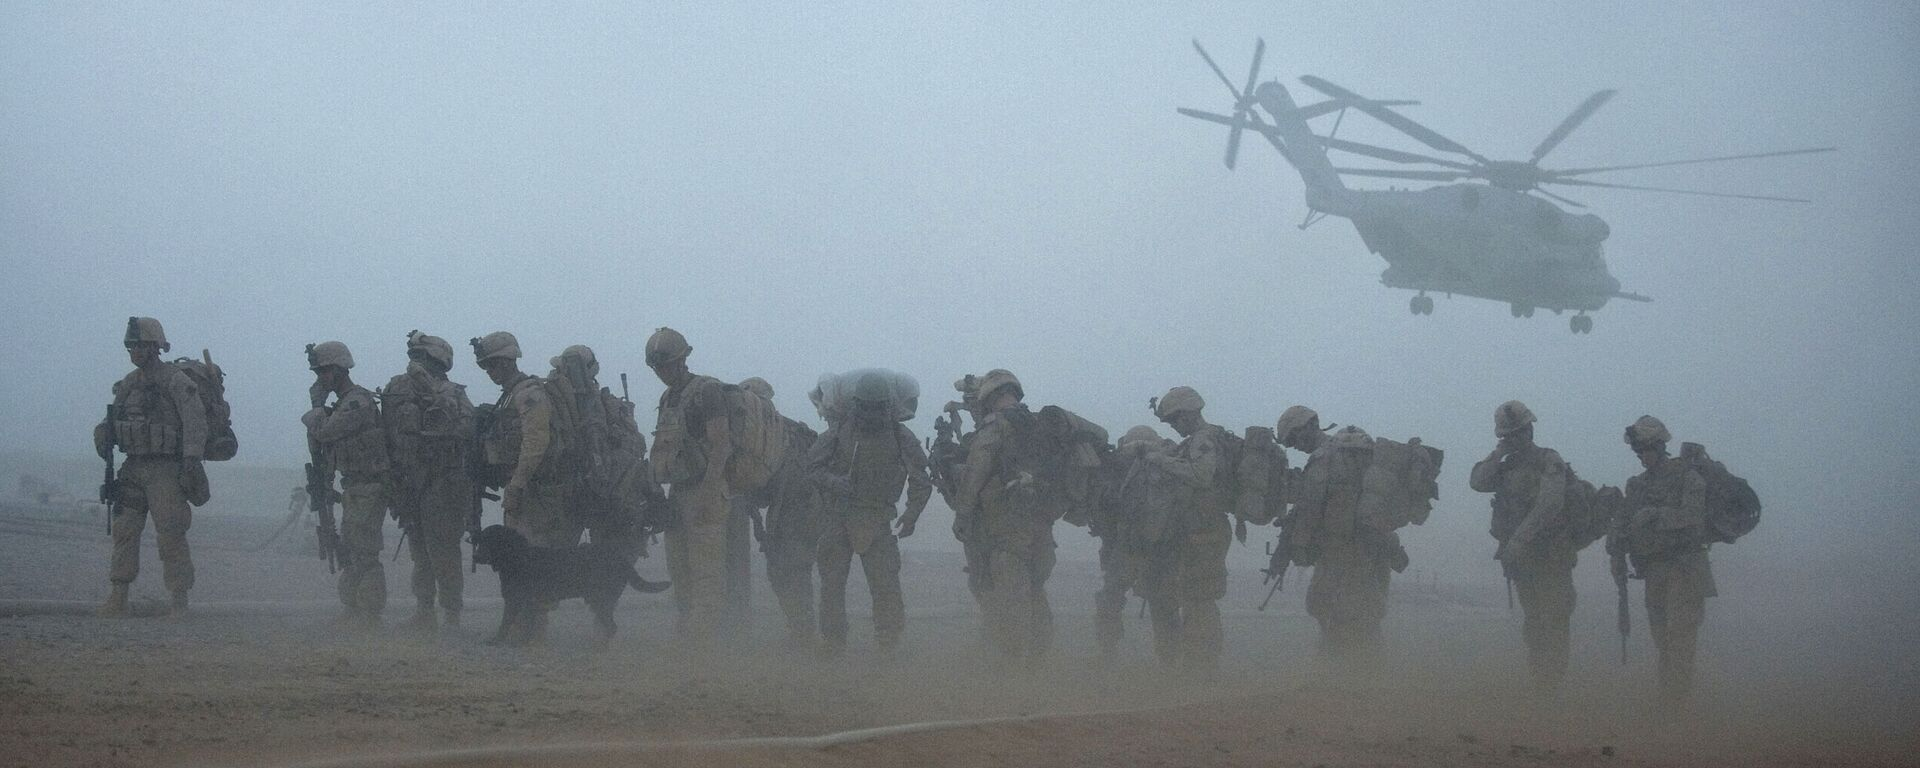 In this file photo US Marines from the 2nd Battalion, 8th Marine Regiment of the 2nd Marine Expeditionary Brigade wait for helicopter transport as part of Operation Khanjar at Camp Dwyer in Helmand Province in Afghanistan on July 2, 2009. - Sputnik International, 1920, 28.07.2021